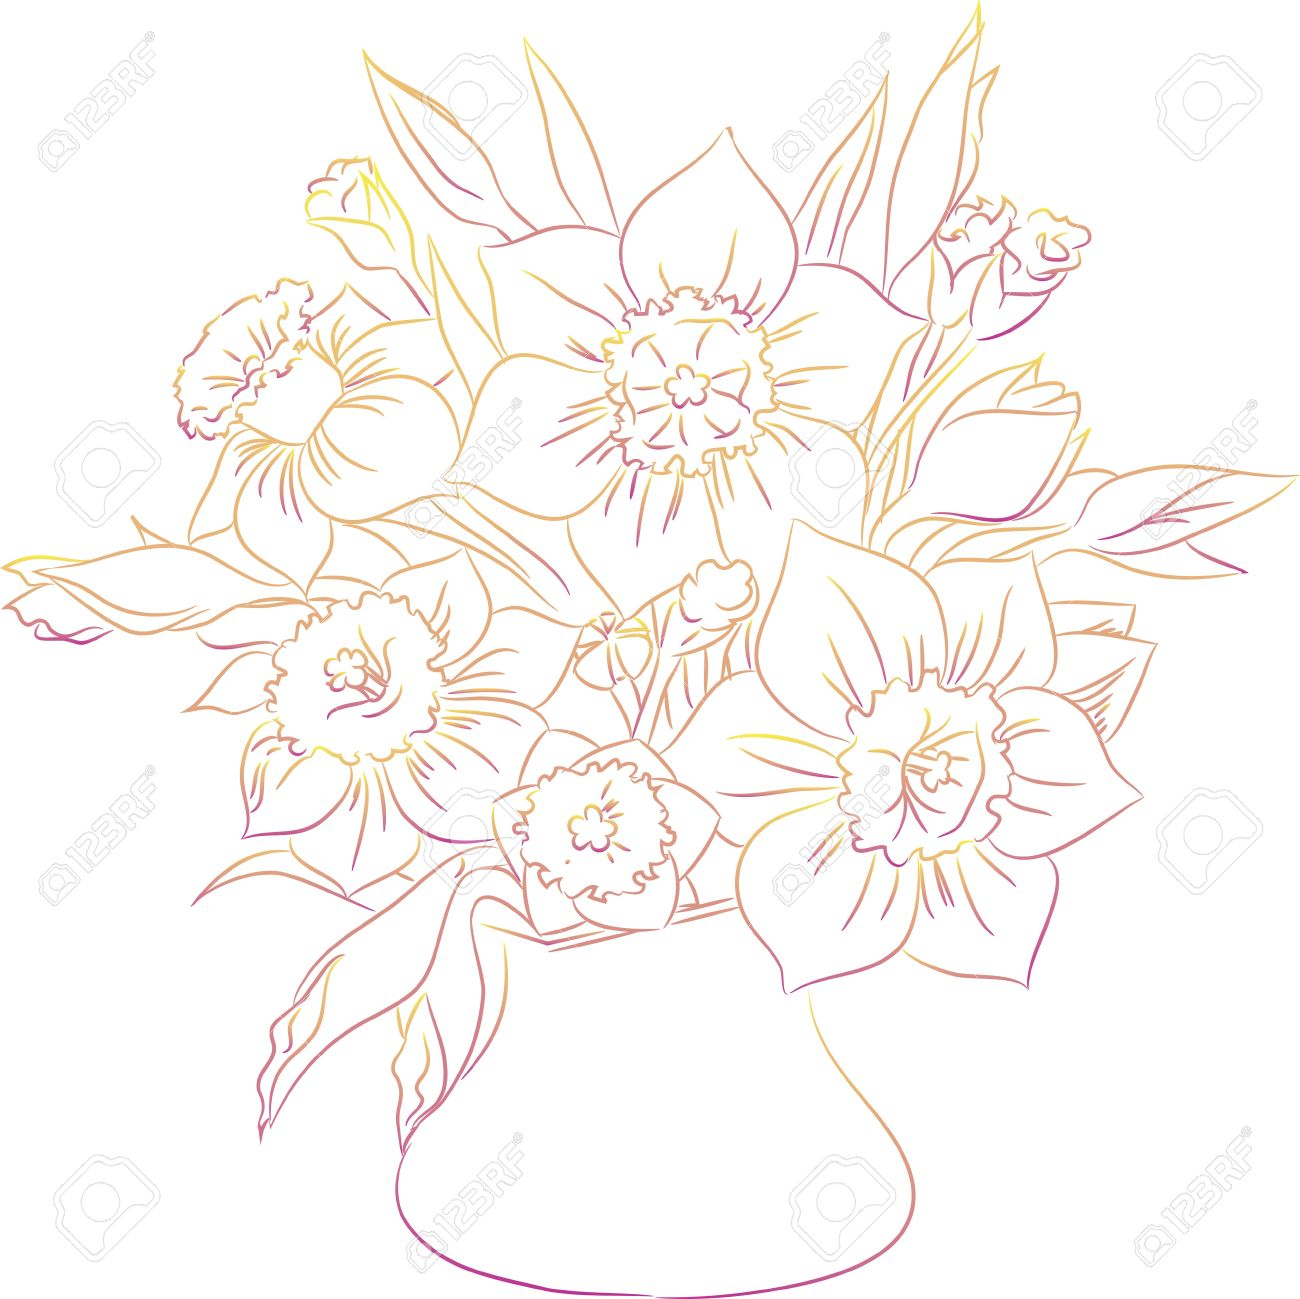 daffodil bouquet line art royalty free cliparts vectors and